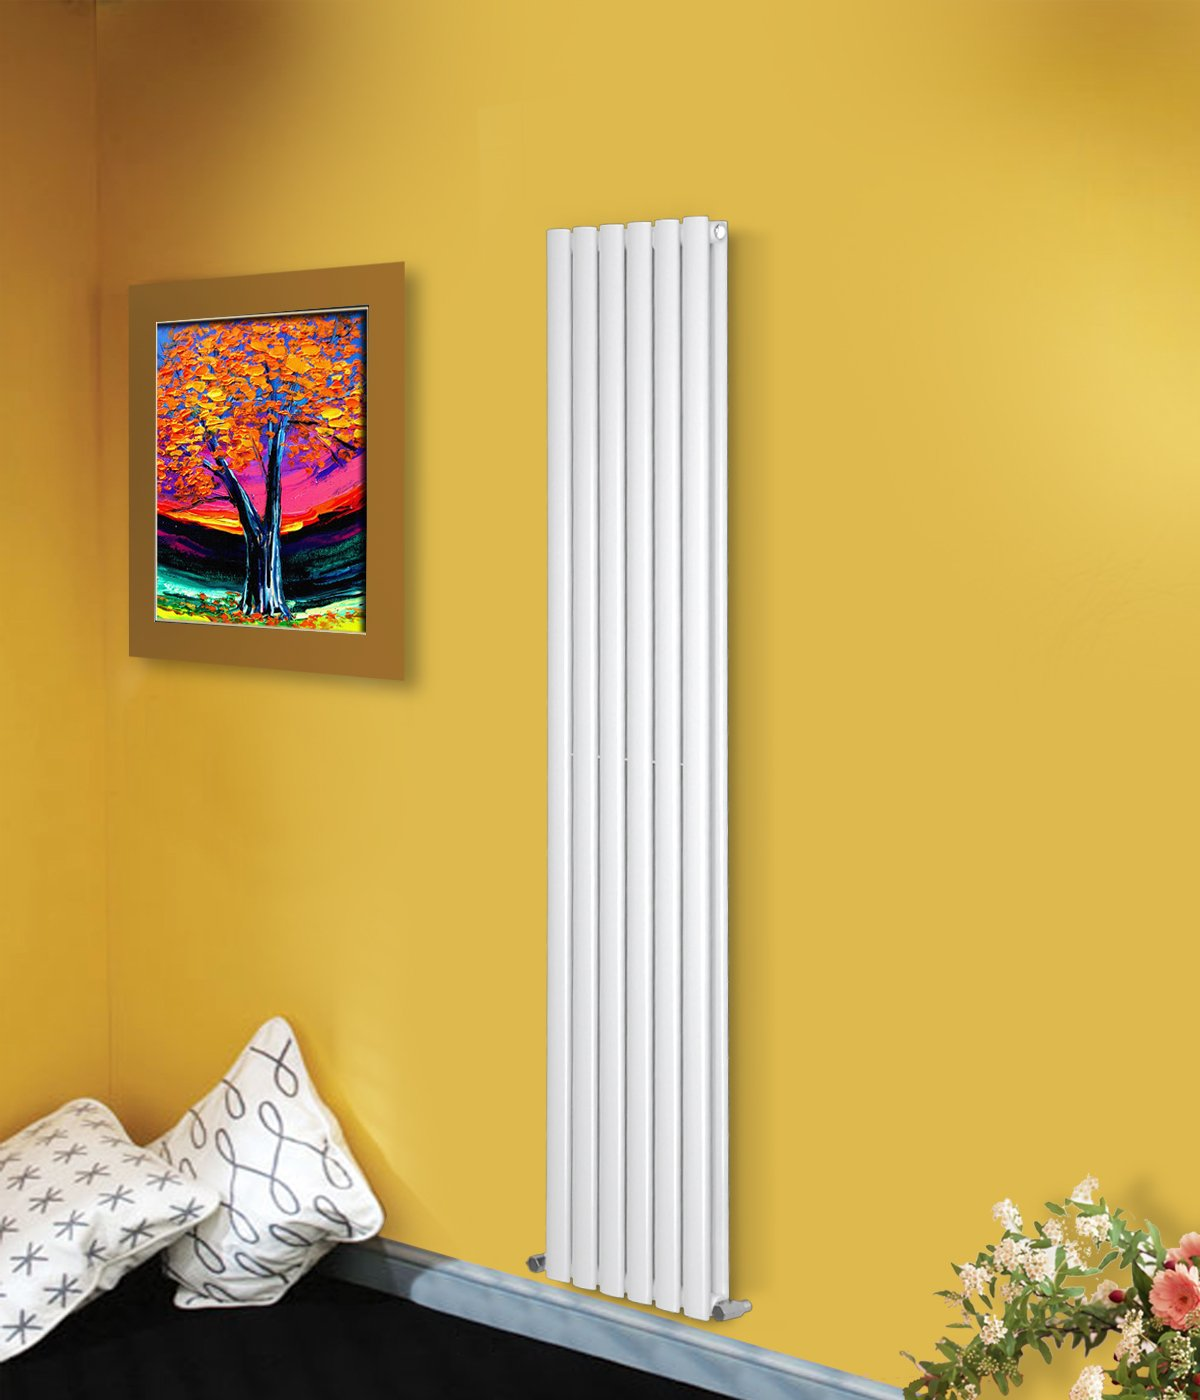 NRG Modern 1800x354mm Vertical Radiator White Double Oval Column Panel Designer Bathroom Central Heating 15 Year Guarantee Manufactured for NRG-Radiator